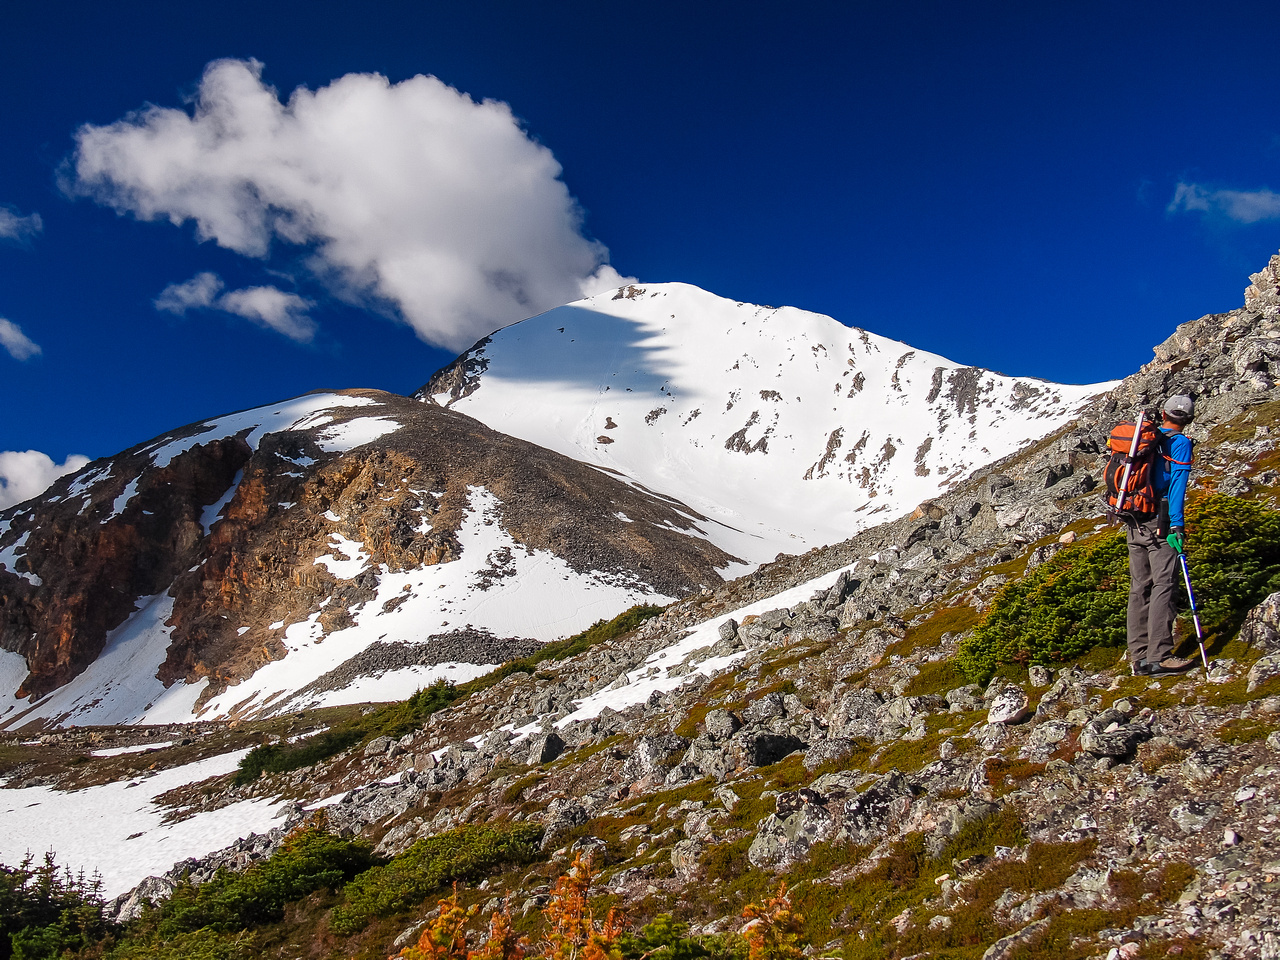 Hiking up the first ridge, above tree line now.